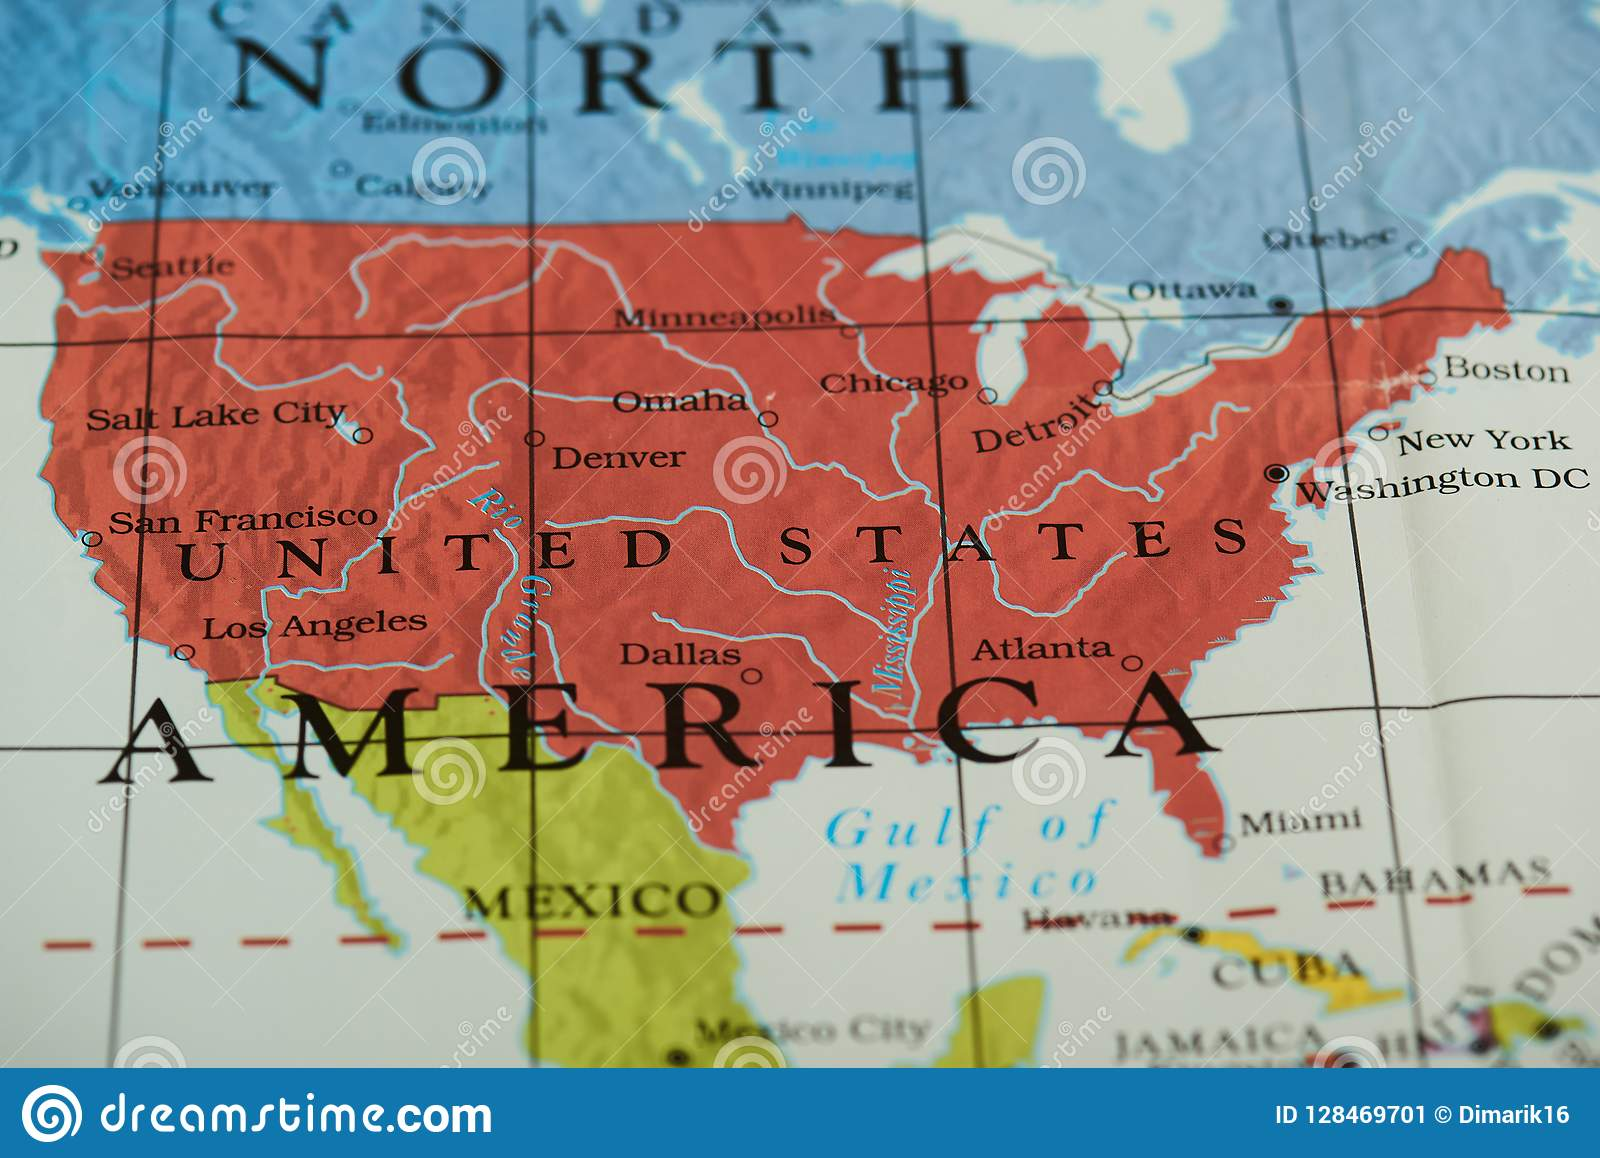 Picture of: 7 112 United States Map Photos Free Royalty Free Stock Photos From Dreamstime